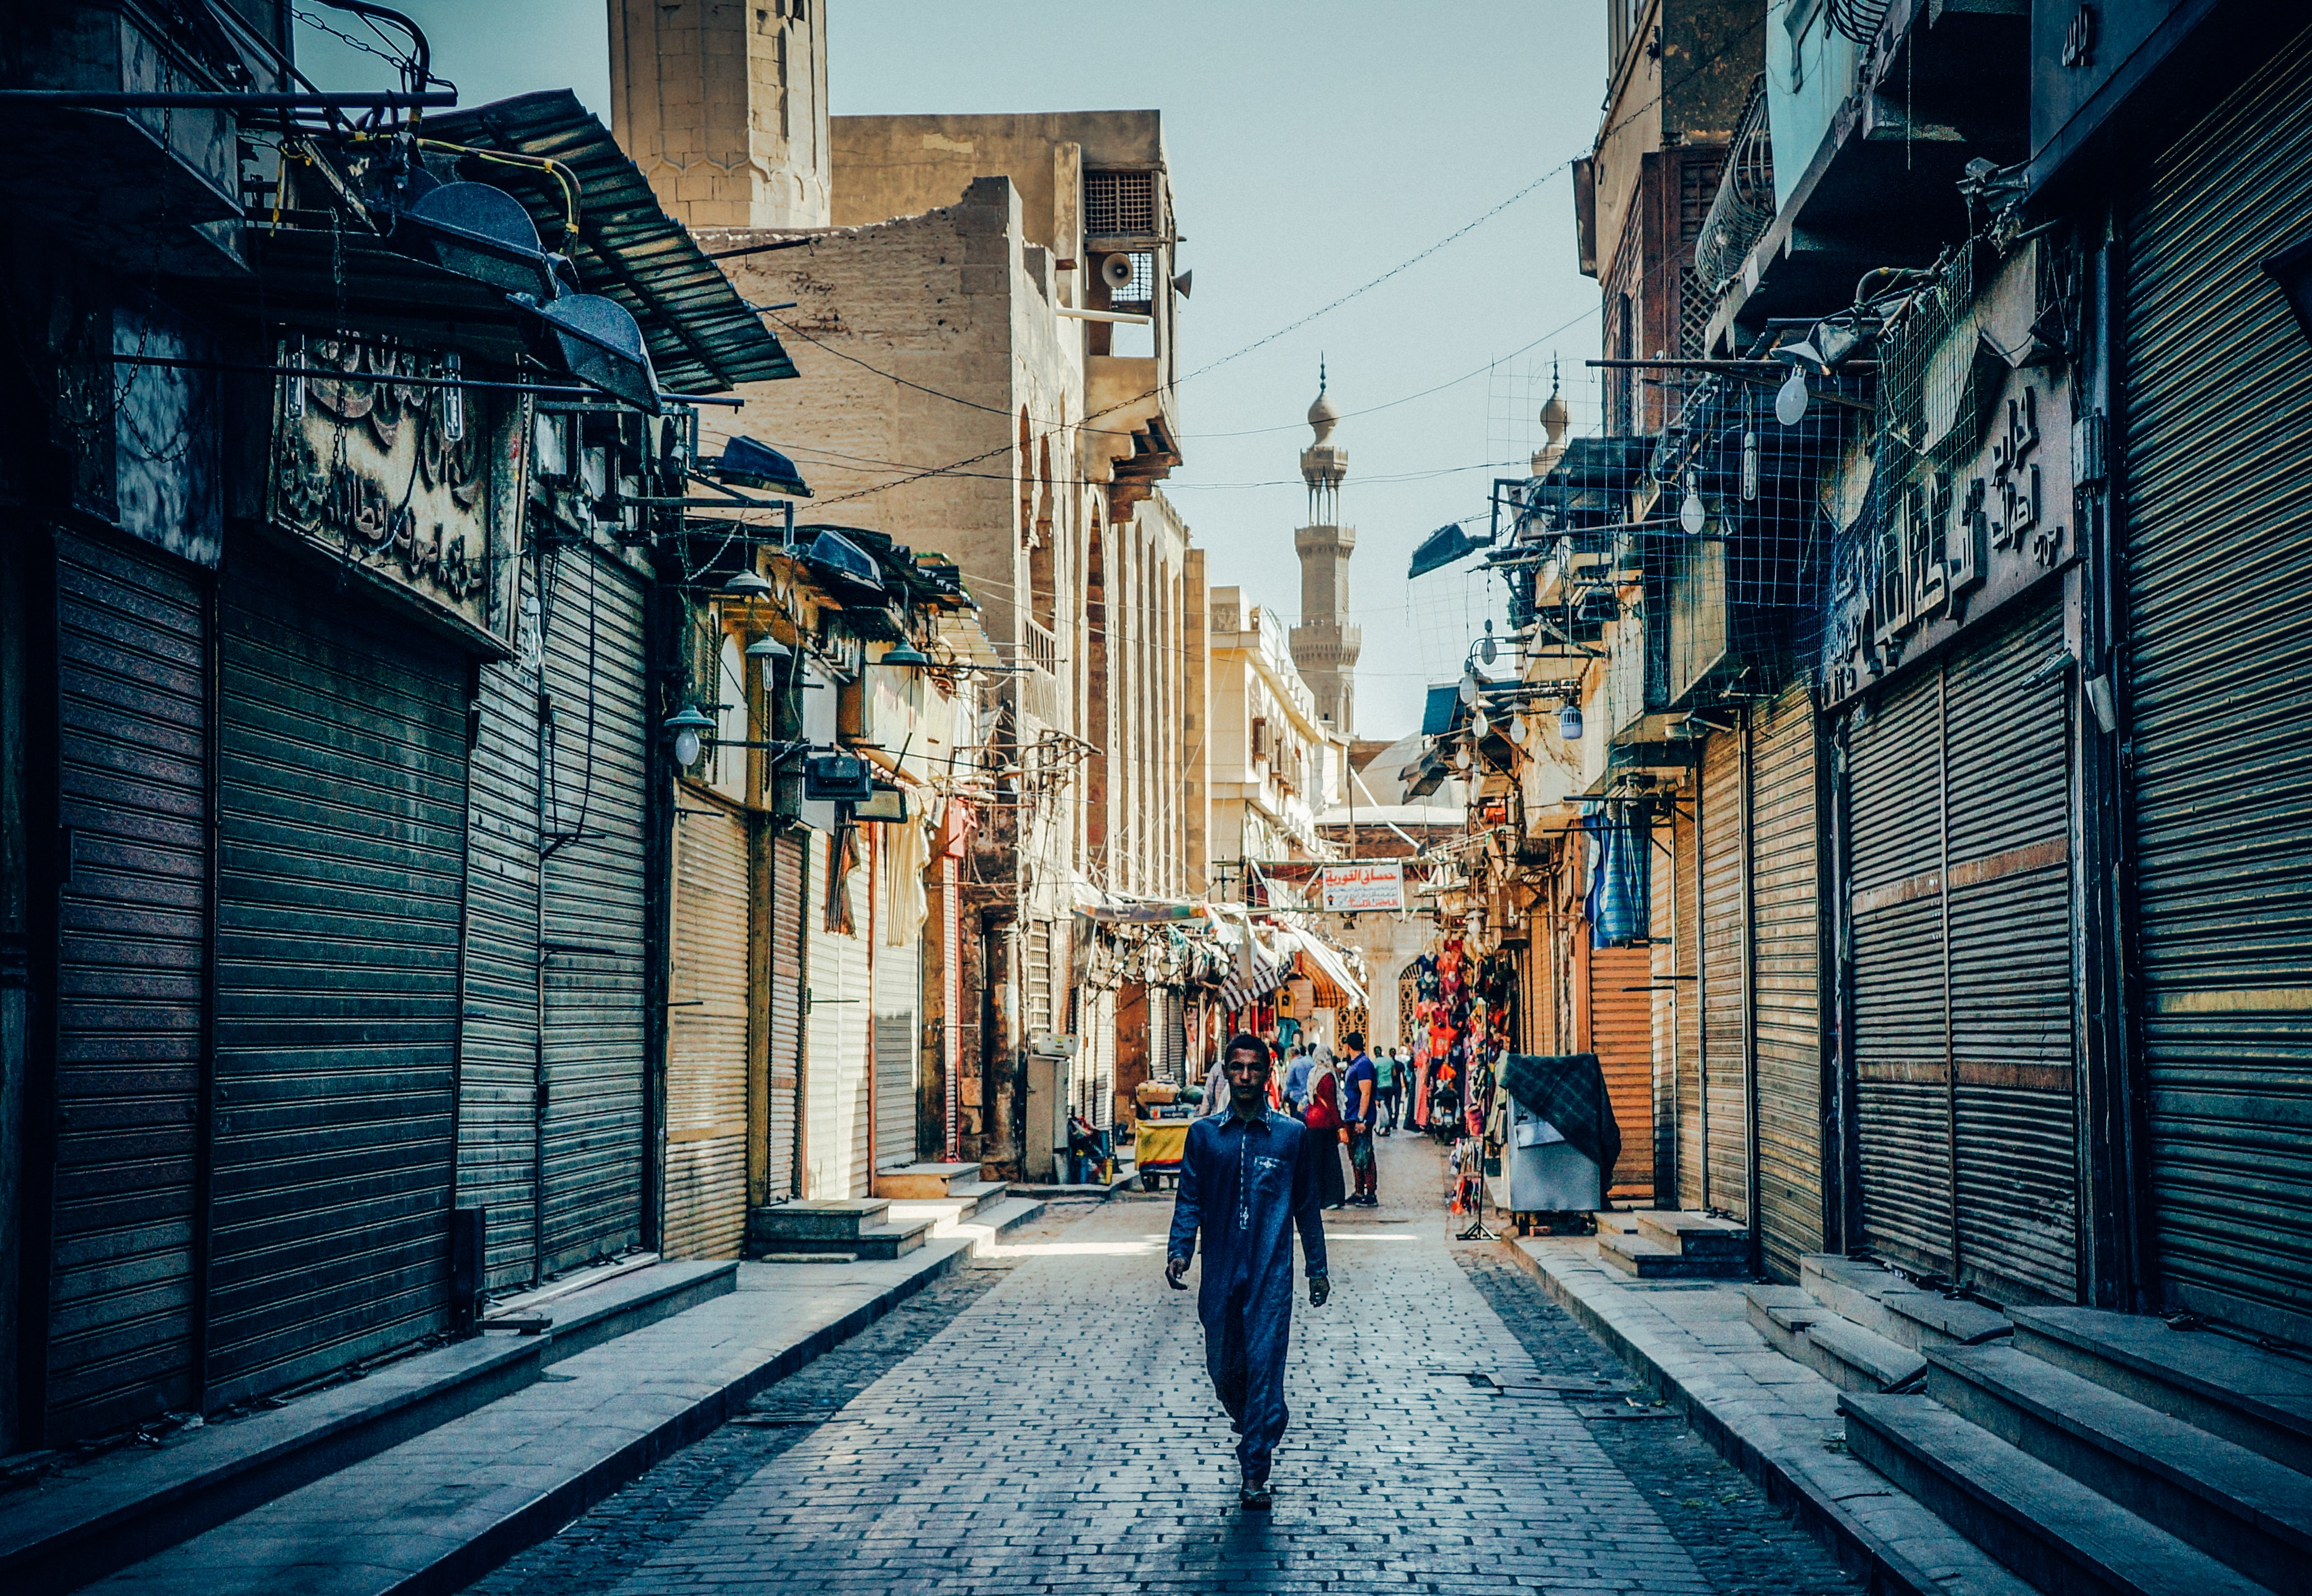 A photograph of a street in Cairo